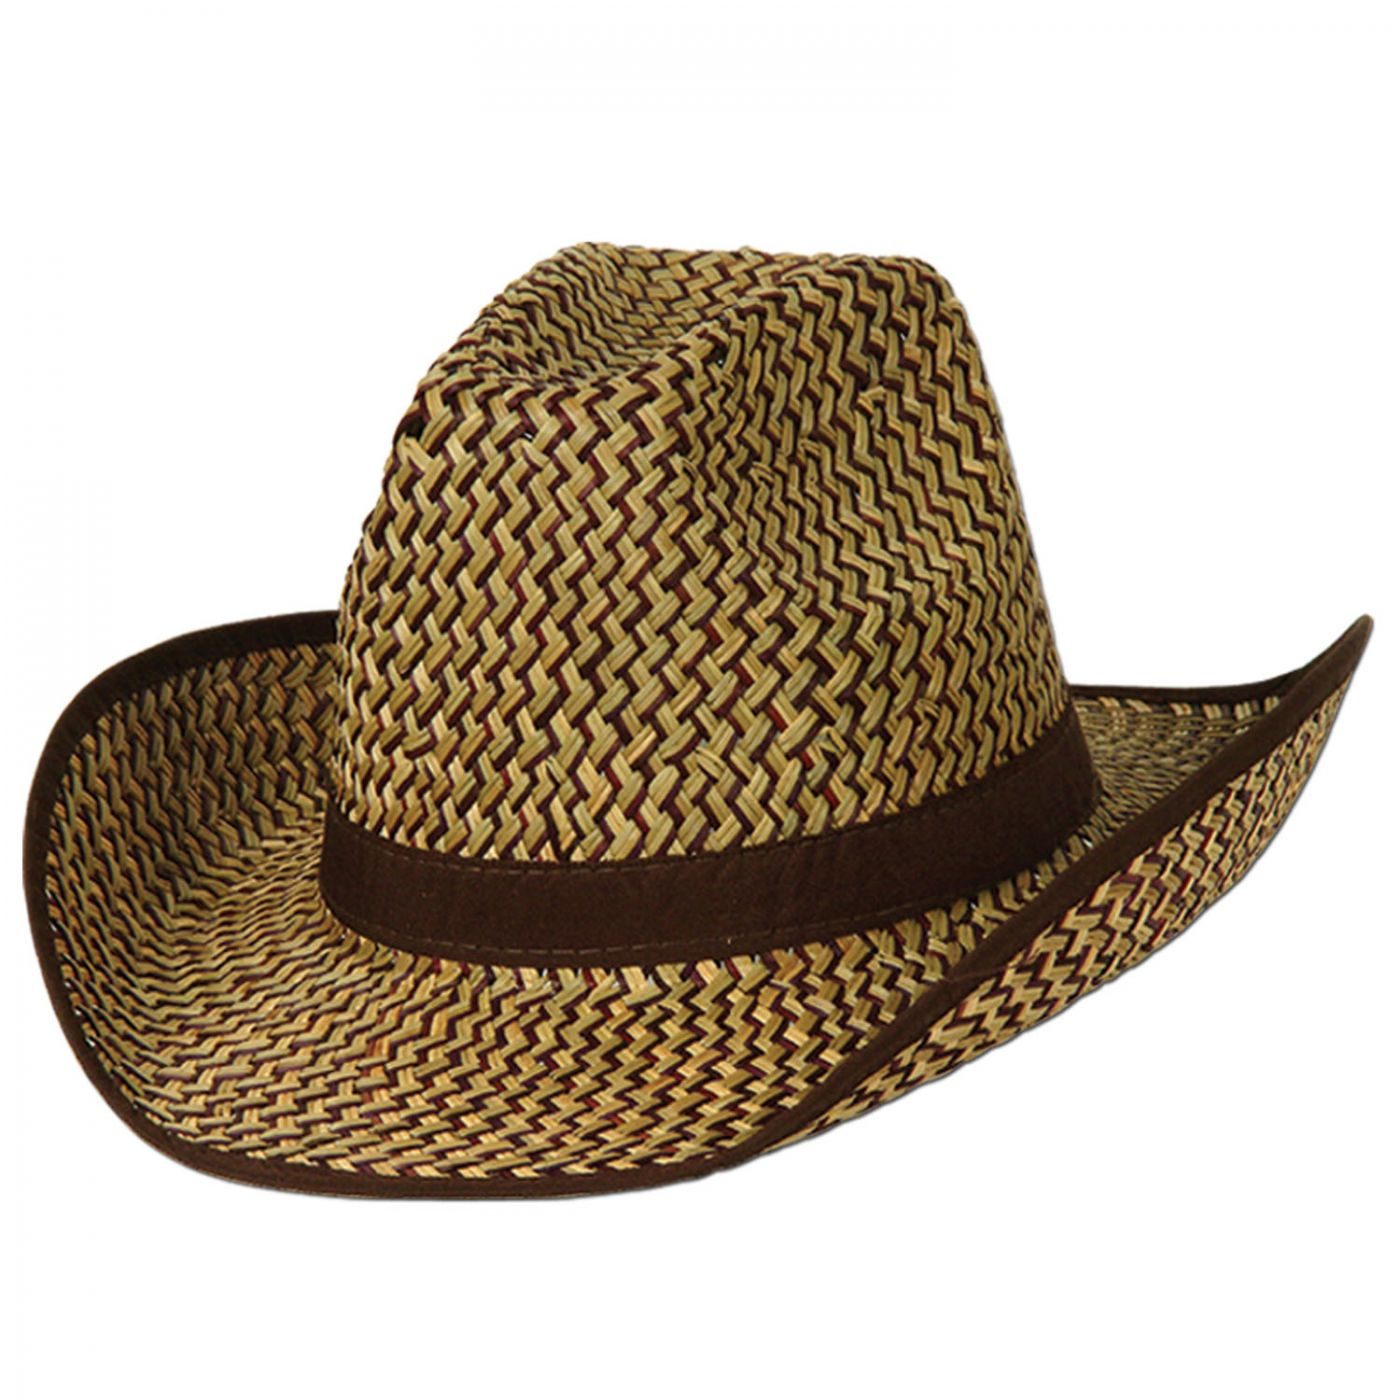 Image of 2-Tone Western Hat w/Brown Trim & Band (60)